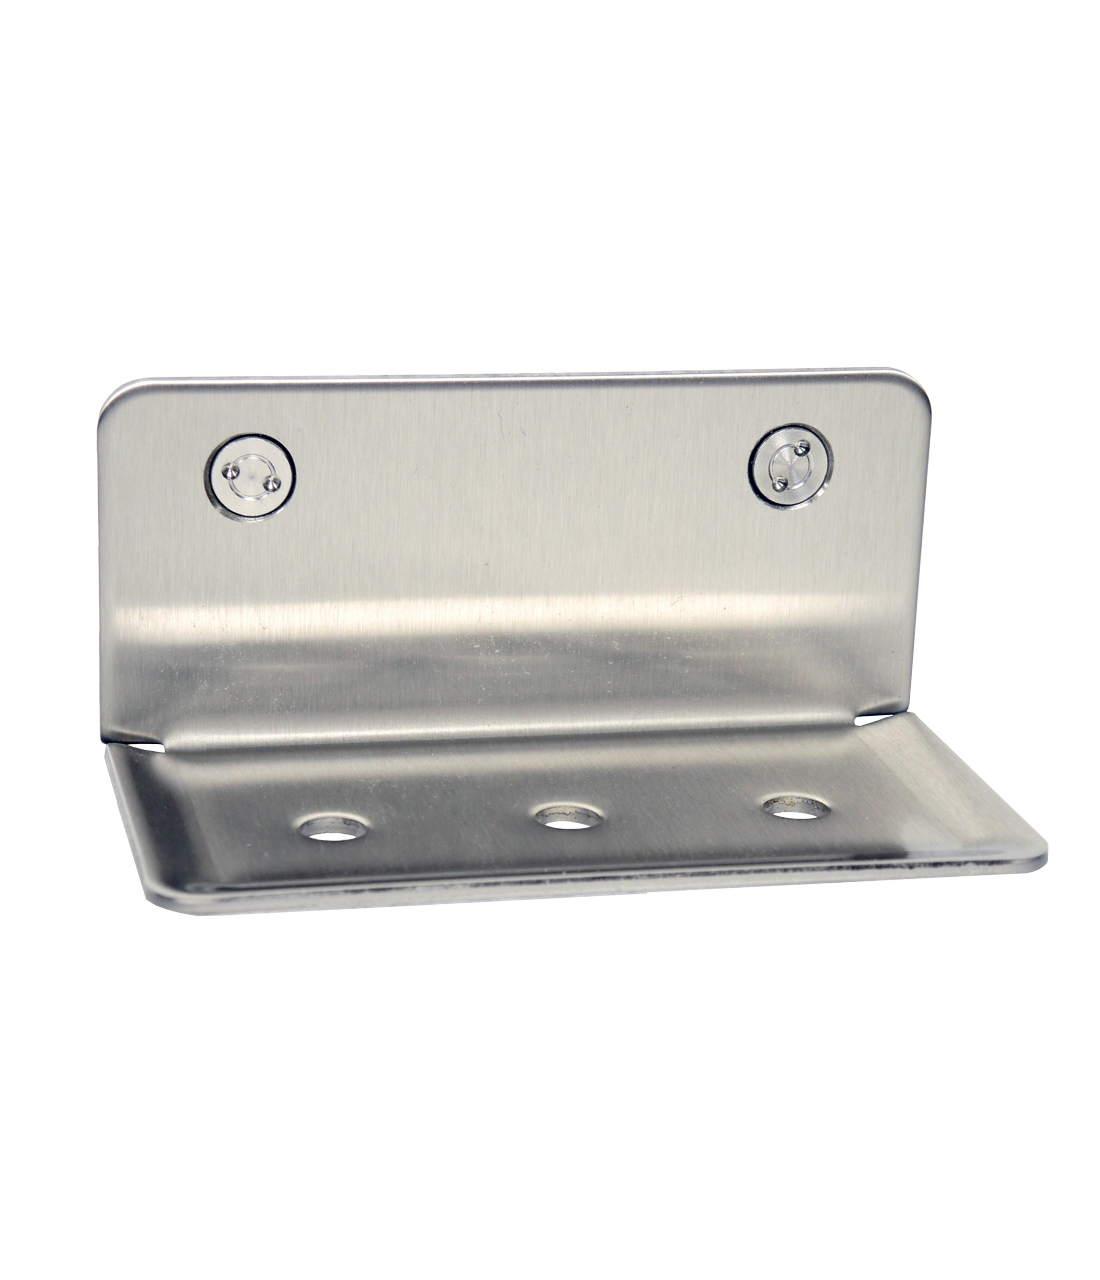 Gamco MSA-5 Security Soap Dish